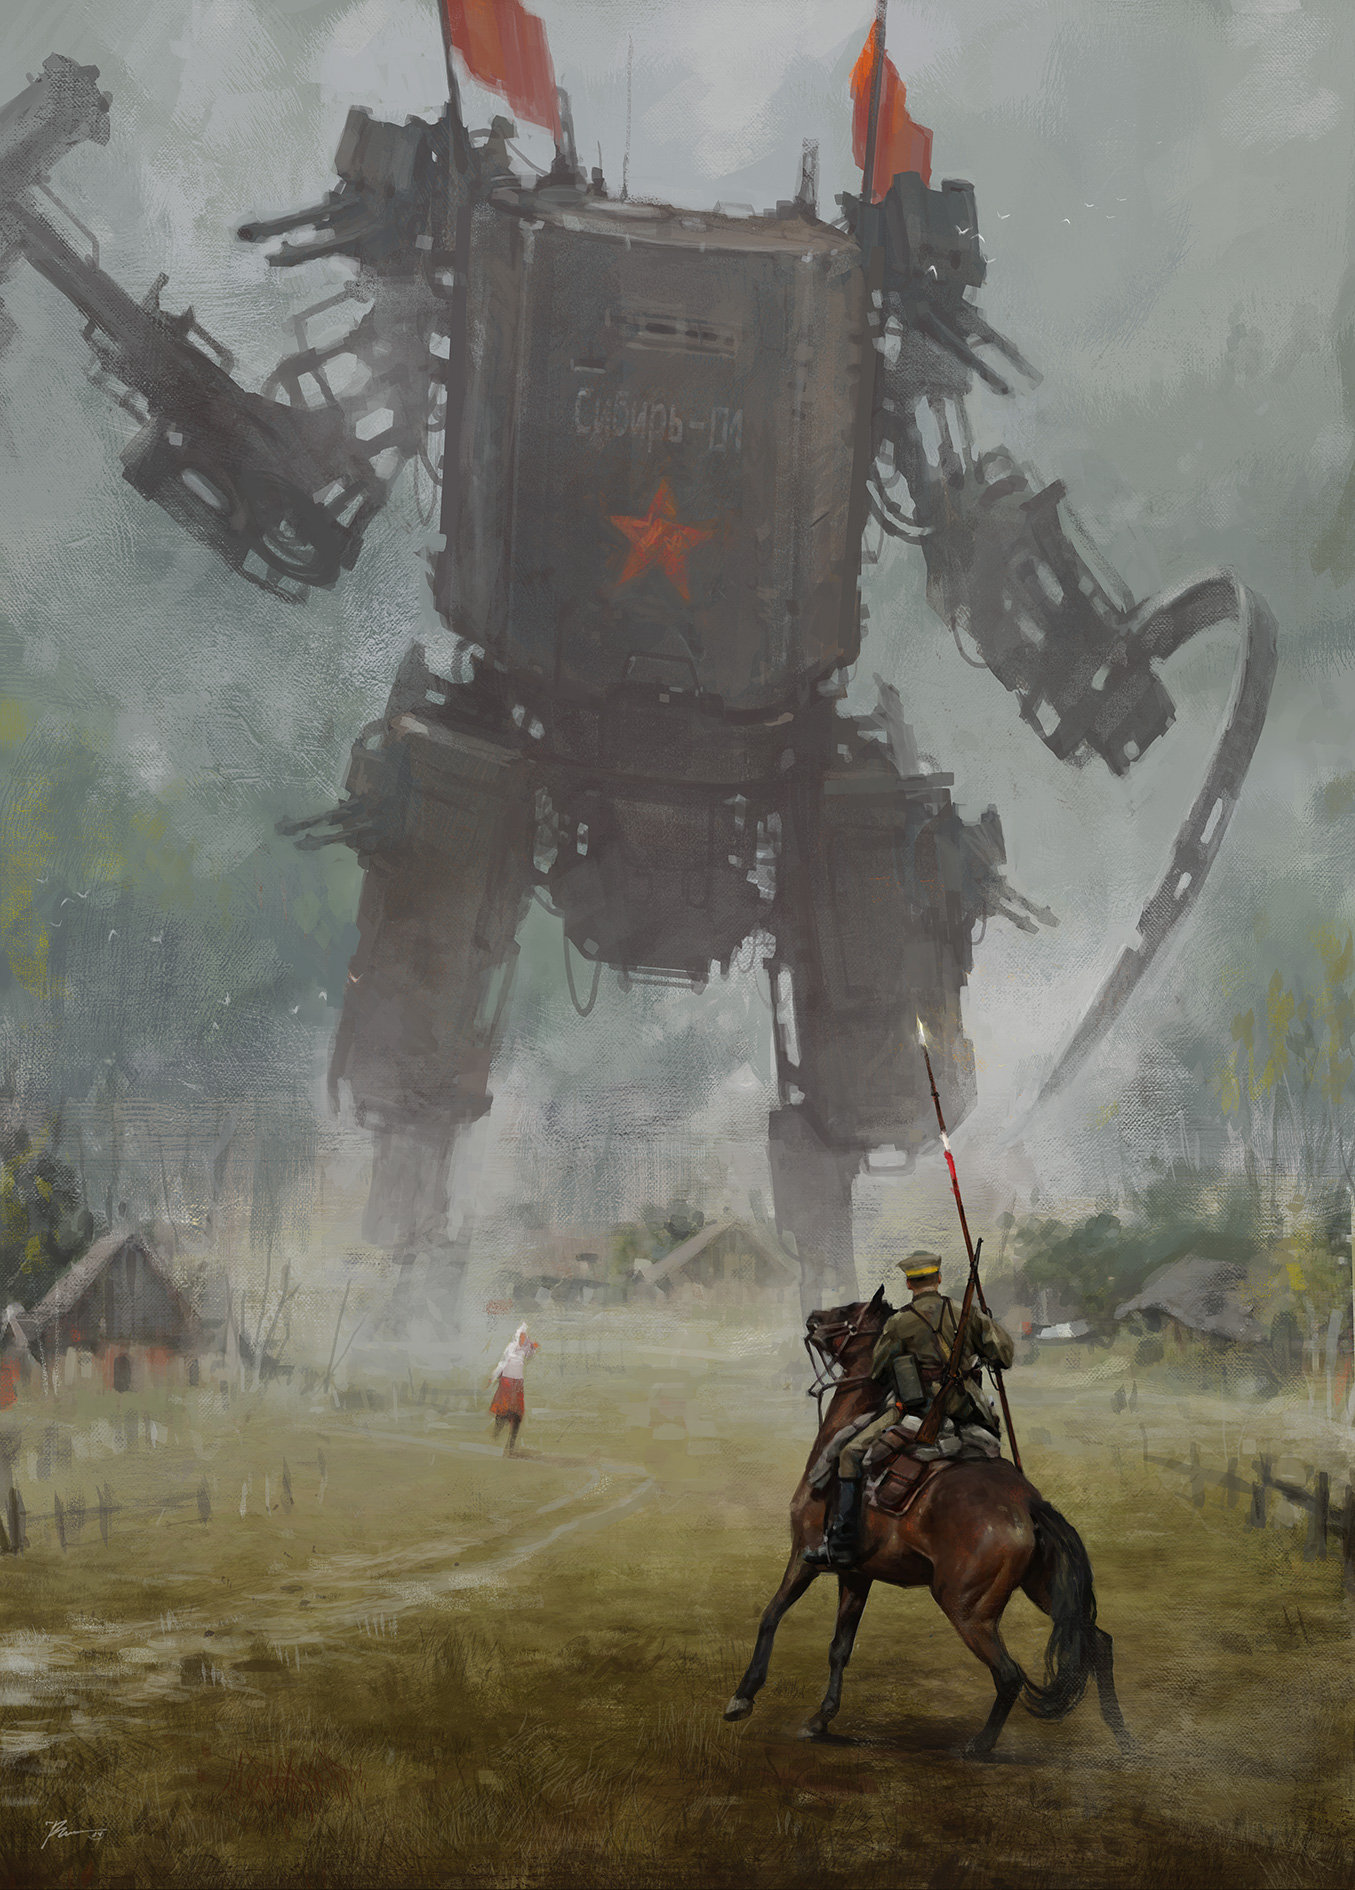 Jakub_Rozalski_-_1920 hammer and sickle